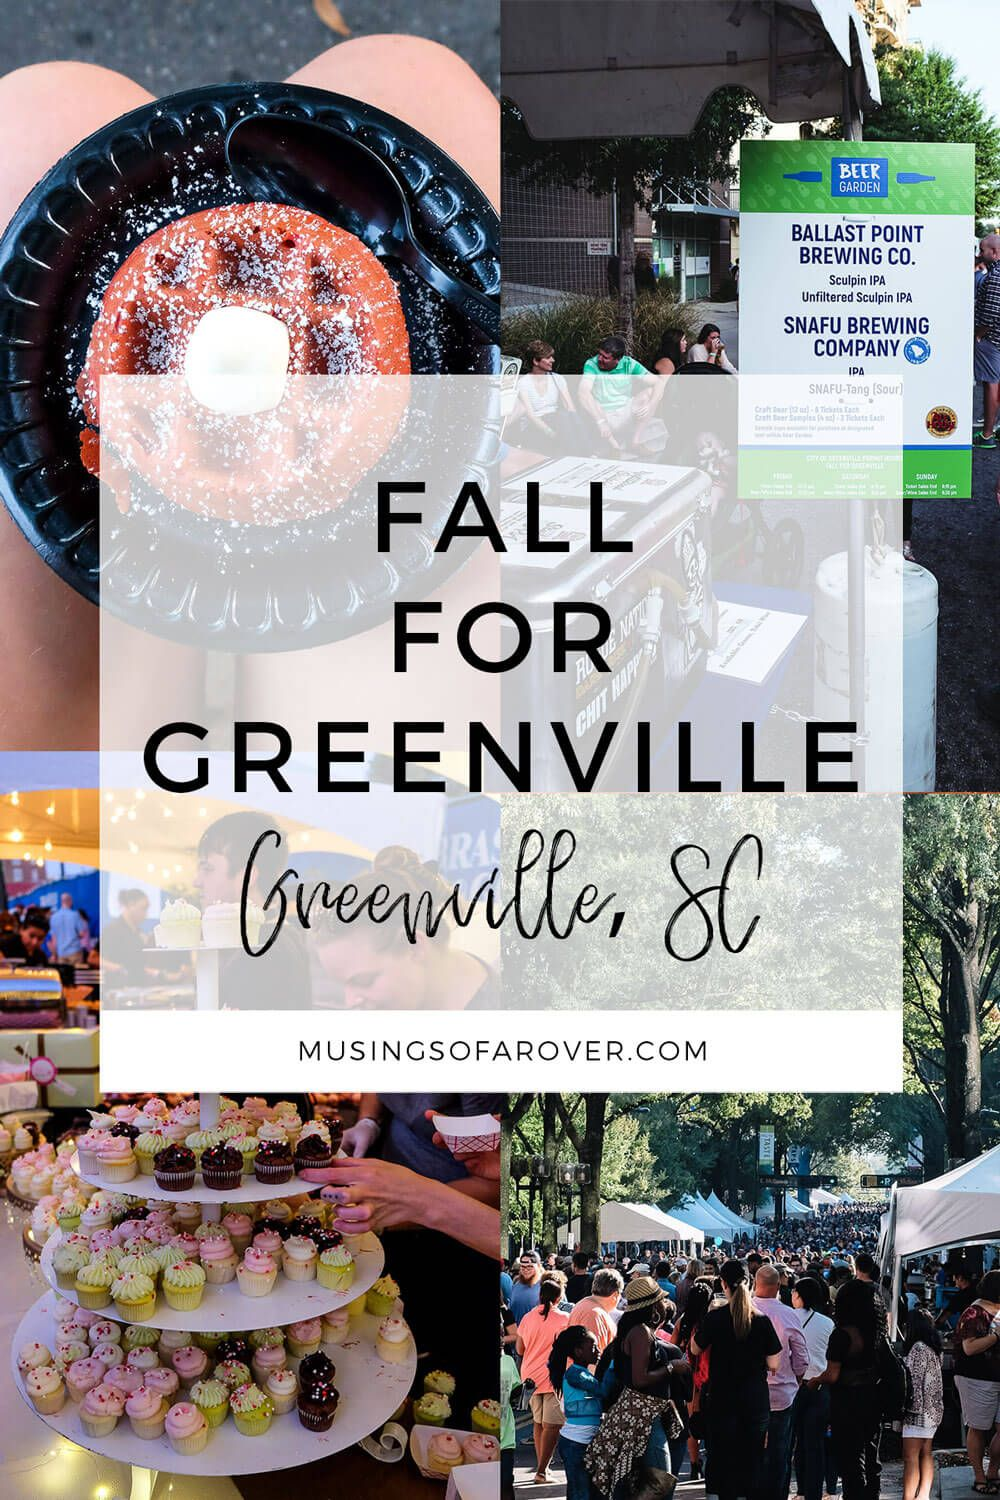 Have you been to Fall for Greenville before in Greenville, SC? Or need a refresher on what to expect? Find out everything you need to know to make the most of this weekend fall festival in October. It's one of my favorite things to do in Greenville SC and you don't want to miss it.